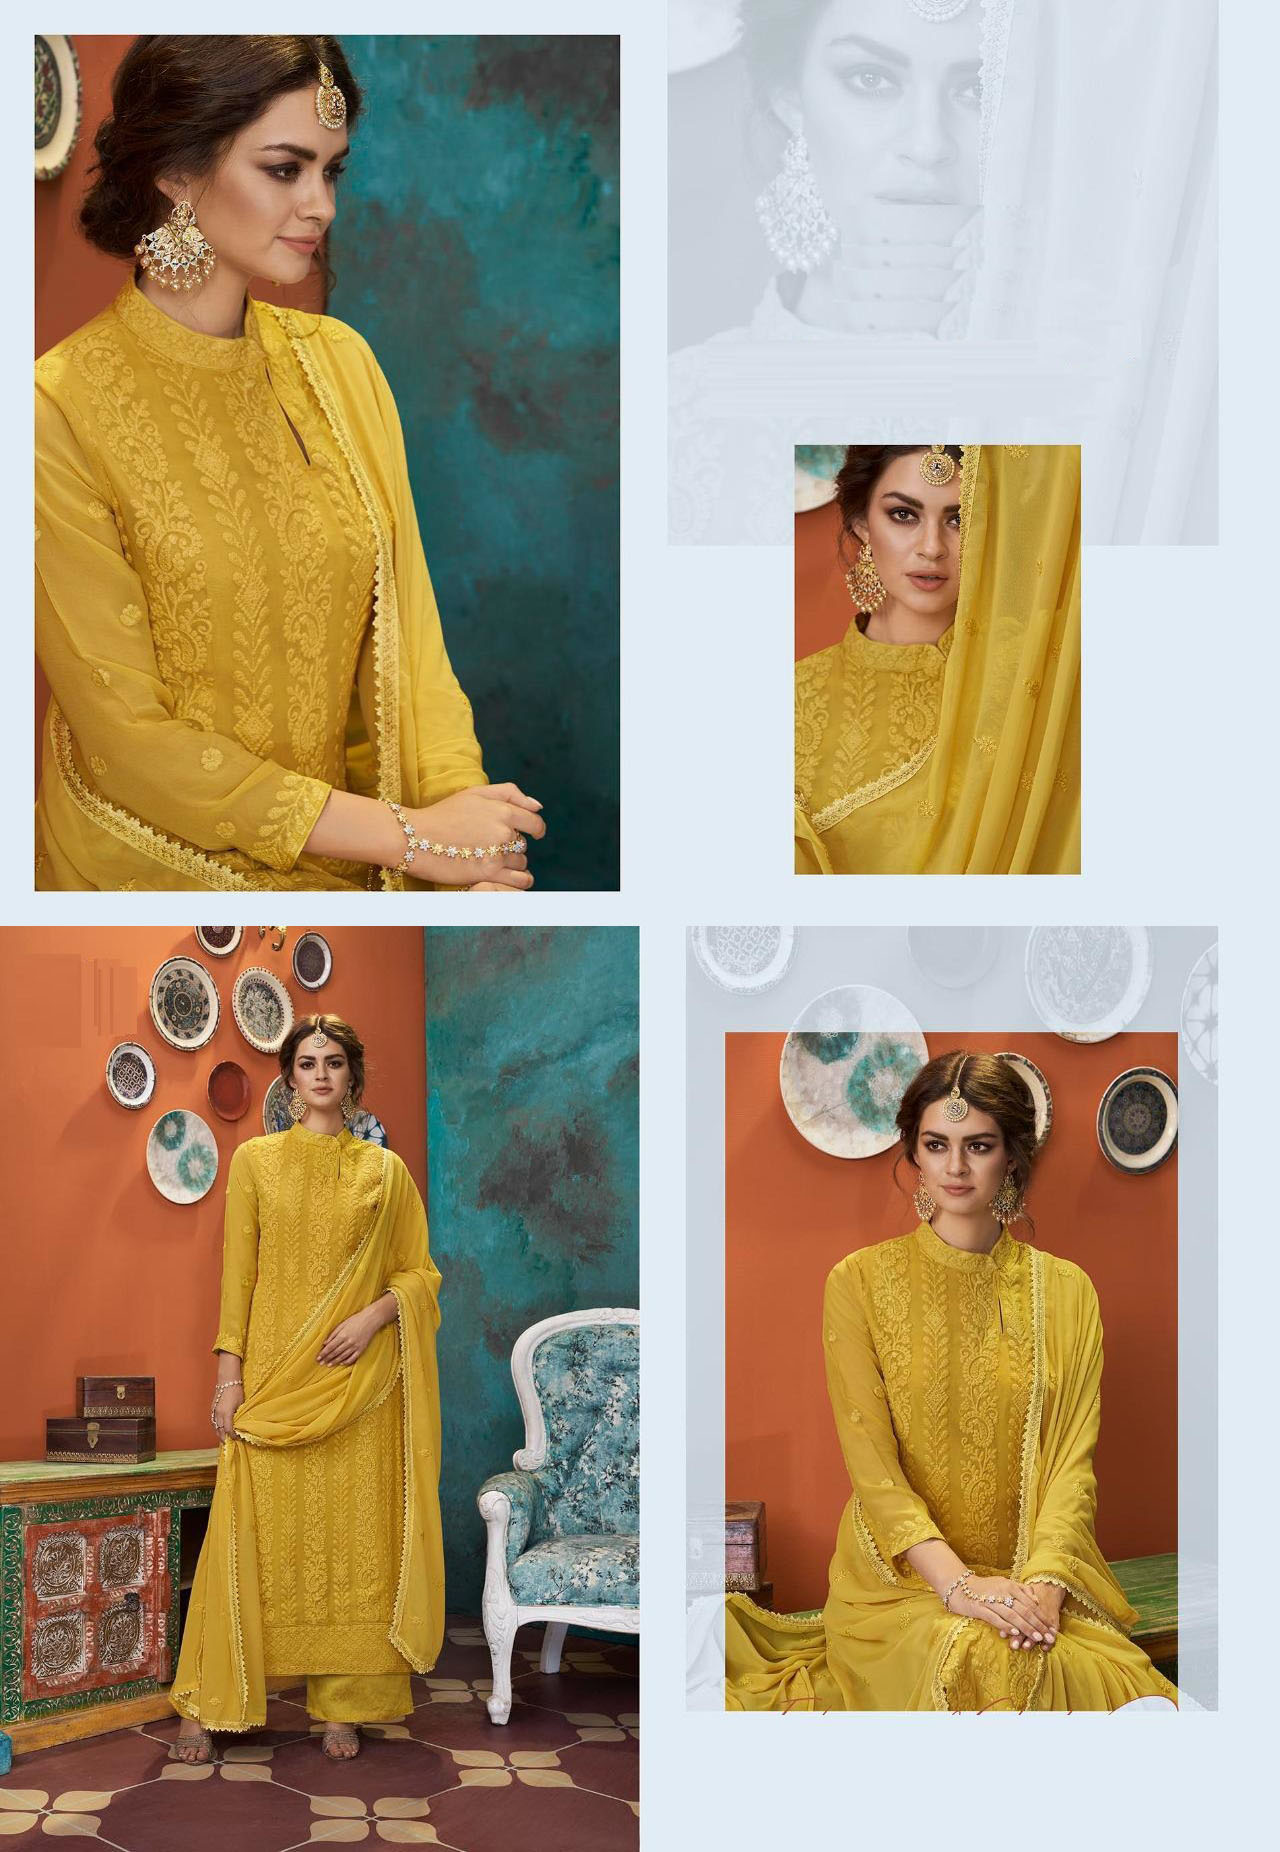 DESIGNER INDIAN SALWAR KAMEEZ - BT-SK-R-30316 - $69.99